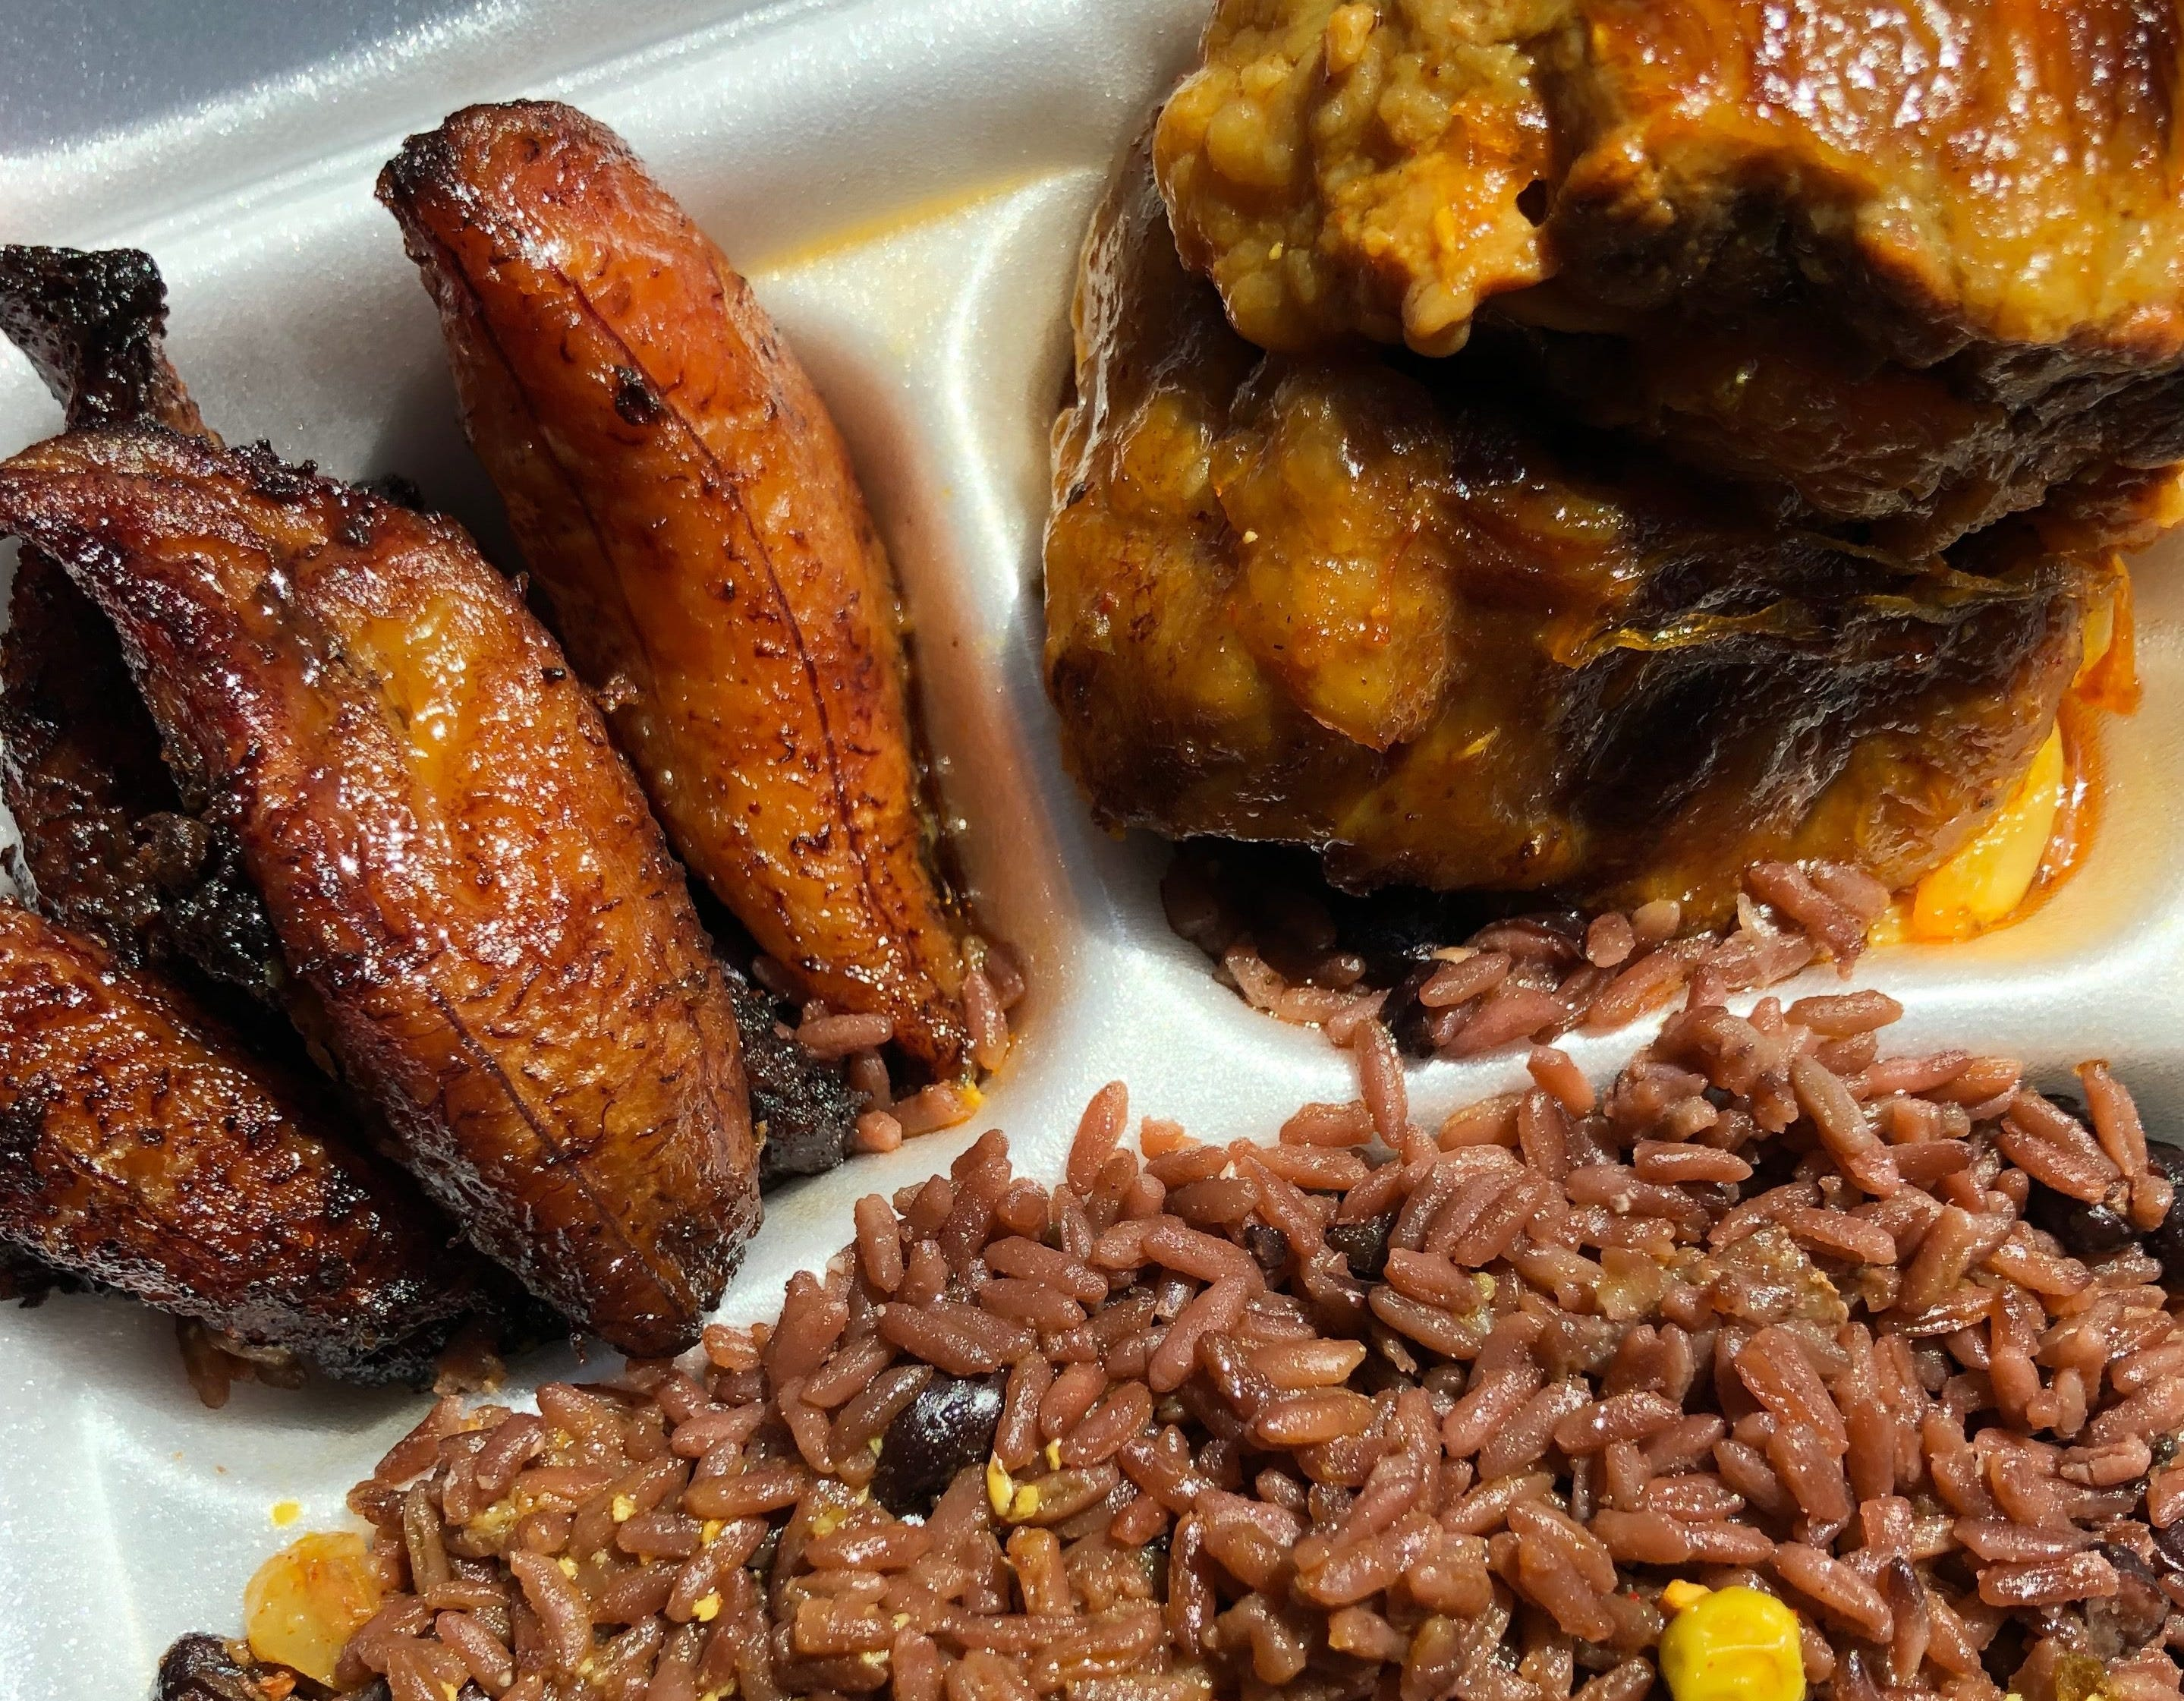 World Bakery & Cafeteria in East Naples serves cafeteria-style Cuban food, like braised oxtails, fried sweet plantains and congris.